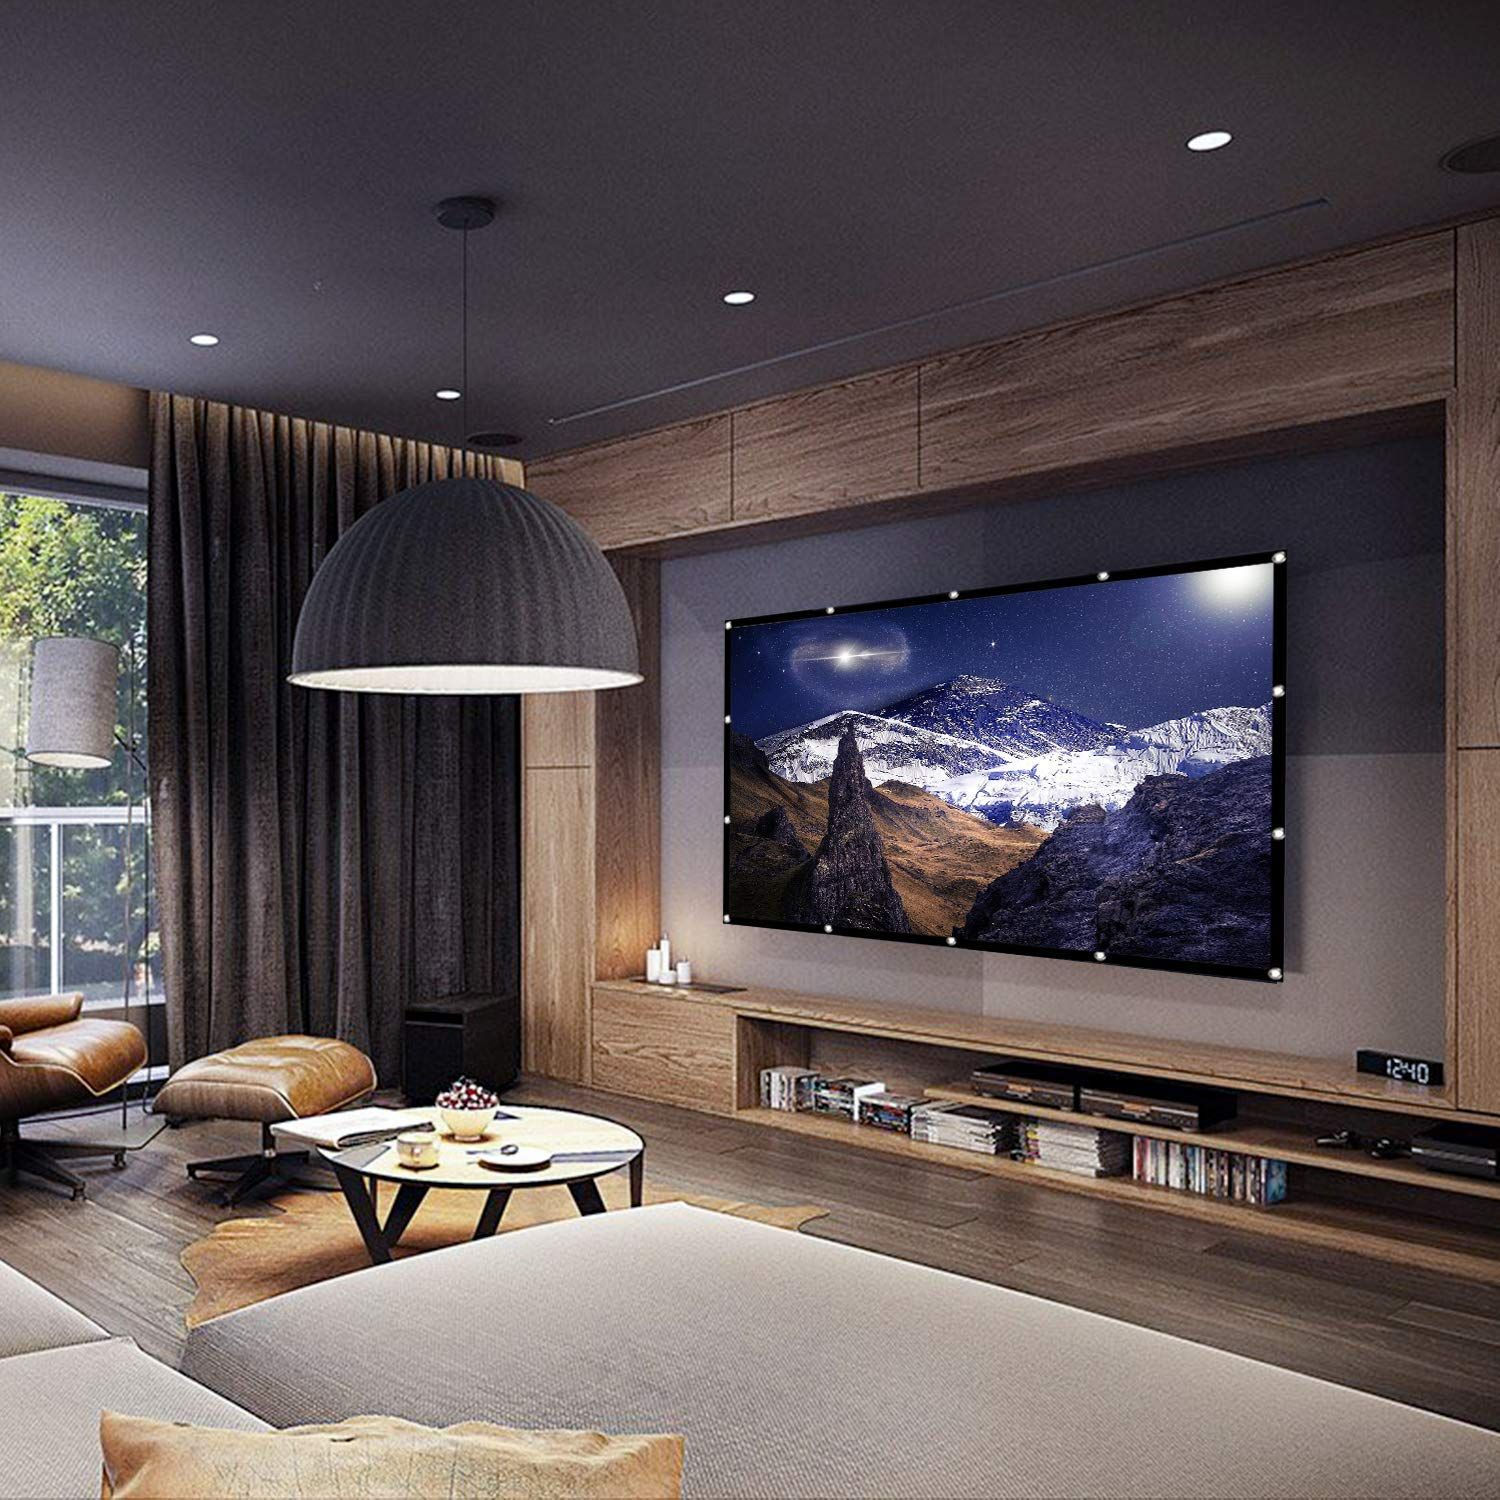 2020 Media Room Ideas Best Guide To Decide Your Perfect Media Room Luxury Living Room Home Theater Design Living Room Tv Unit